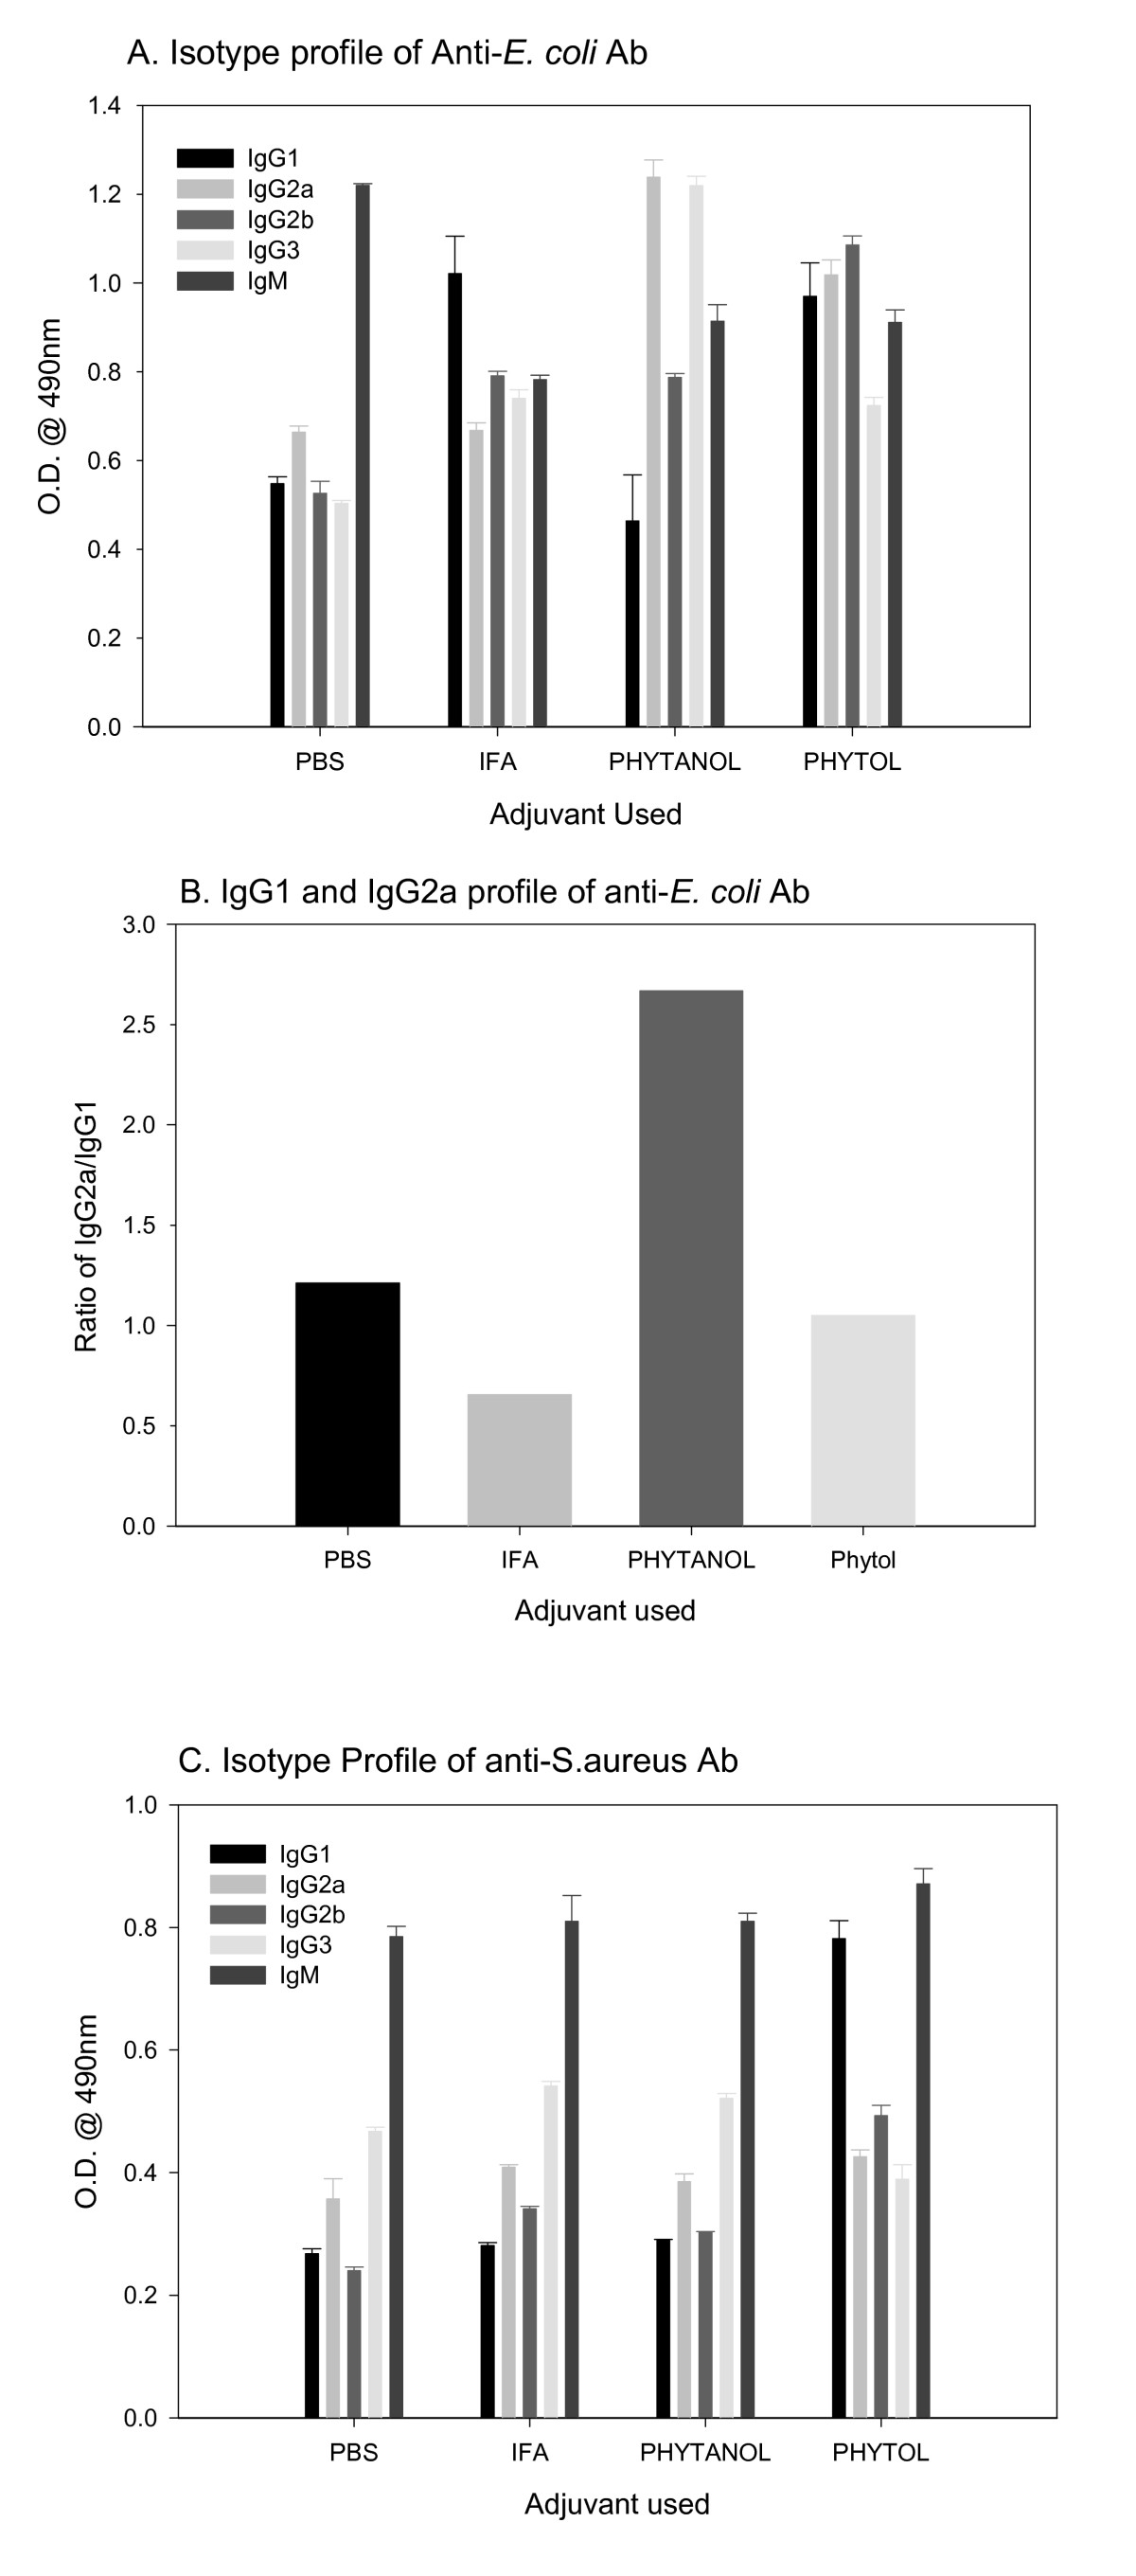 https://static-content.springer.com/image/art%3A10.1186%2F1476-8518-4-5/MediaObjects/12949_2006_Article_26_Fig3_HTML.jpg